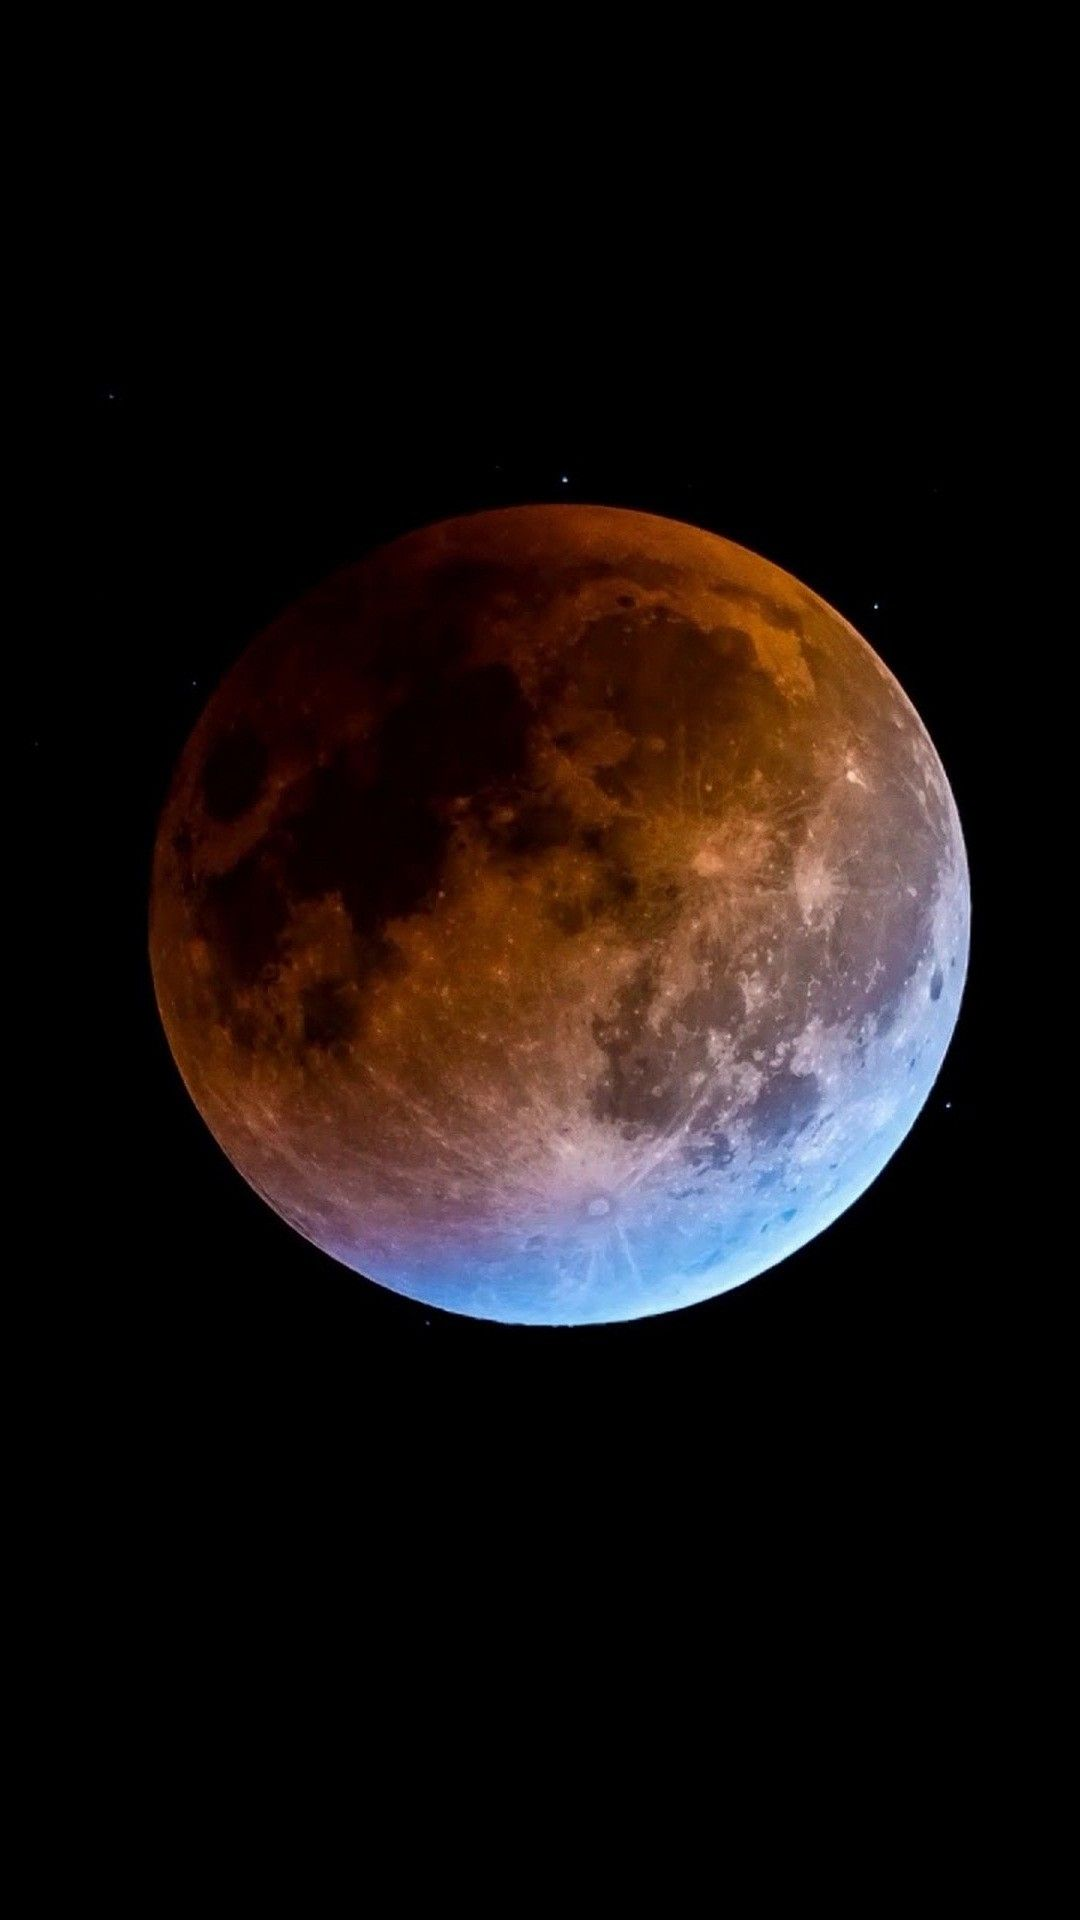 28 Super Blue Blood Moon Wallpapers On Wallpapersafari